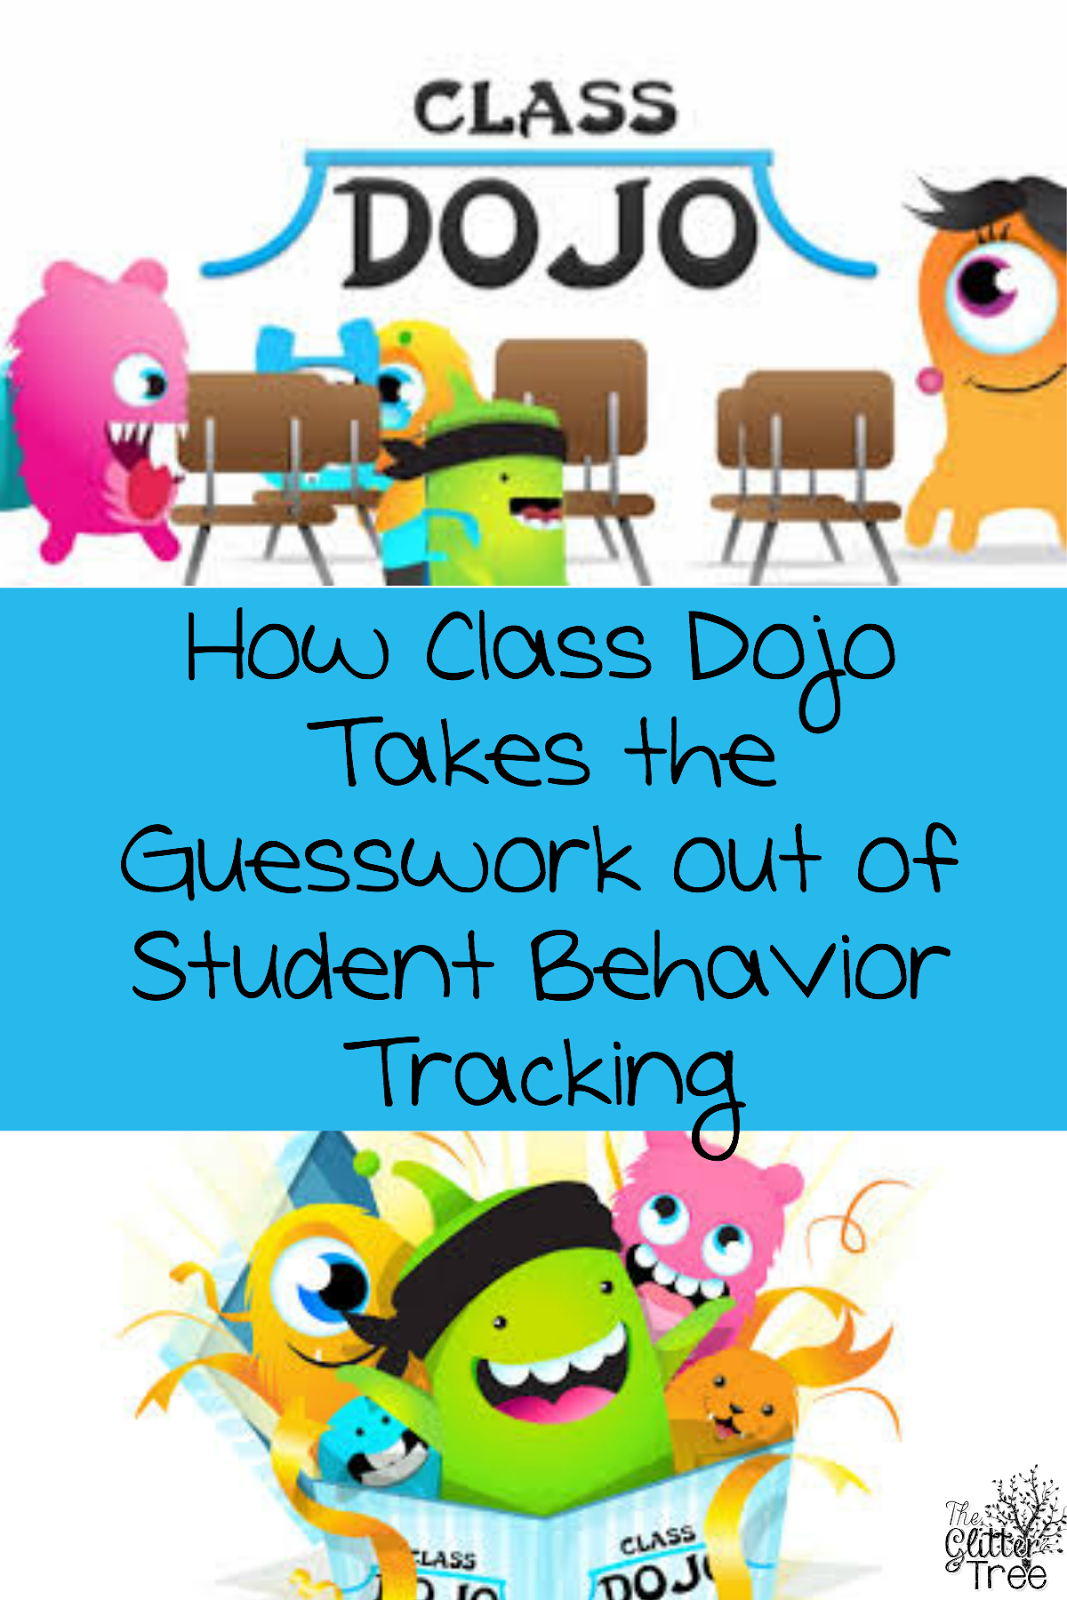 How Class Dojo Takes The Guesswork Out Of Student Behavior